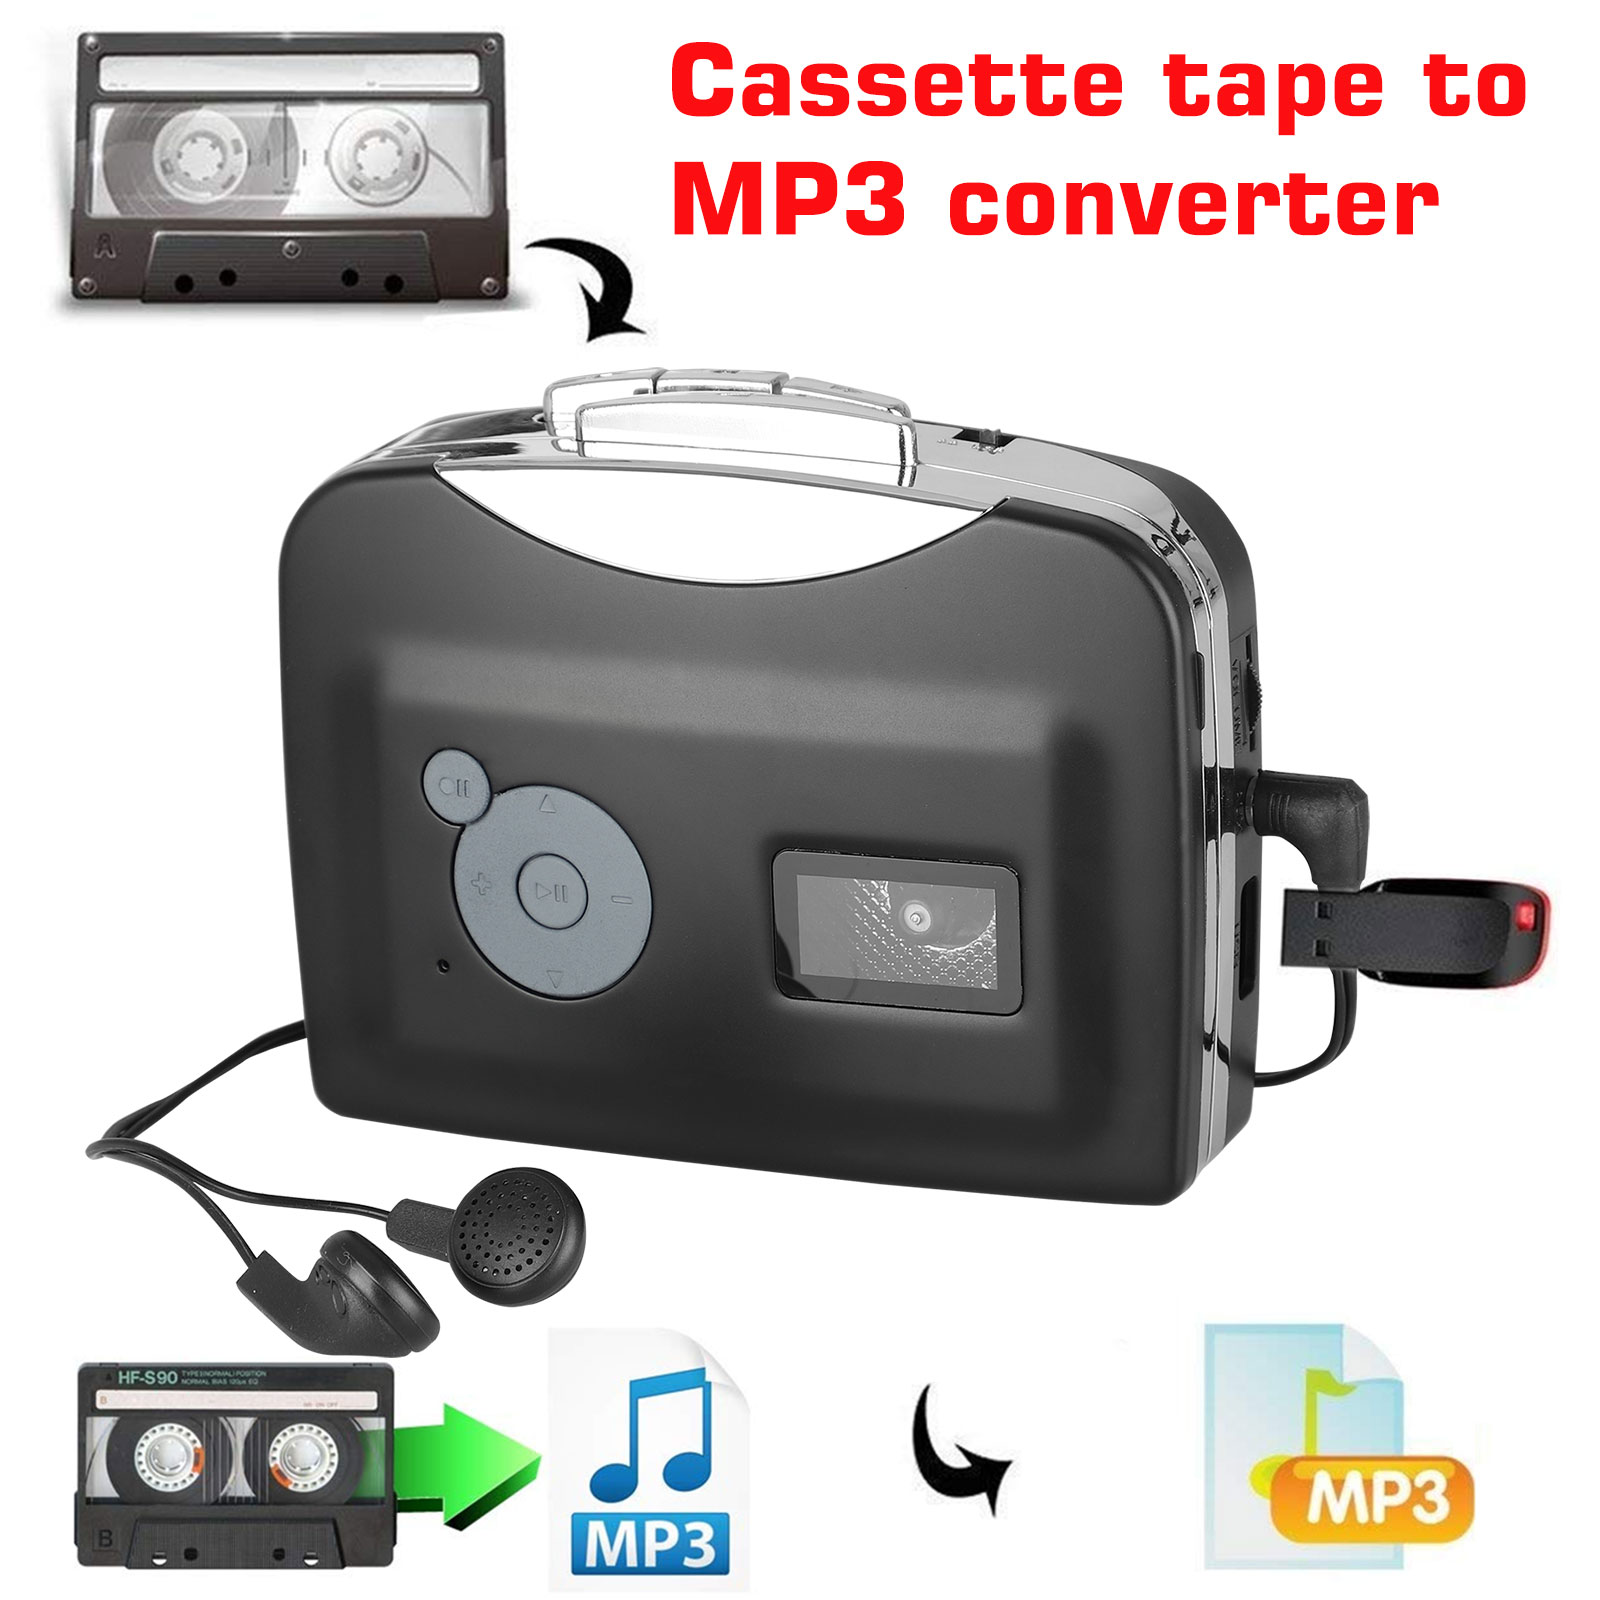 Portable Walkman Audio Music Player Cassette-to-MP3 Converter with Earphones USB Cassette Player Tape to MP3 Converter No PC Required